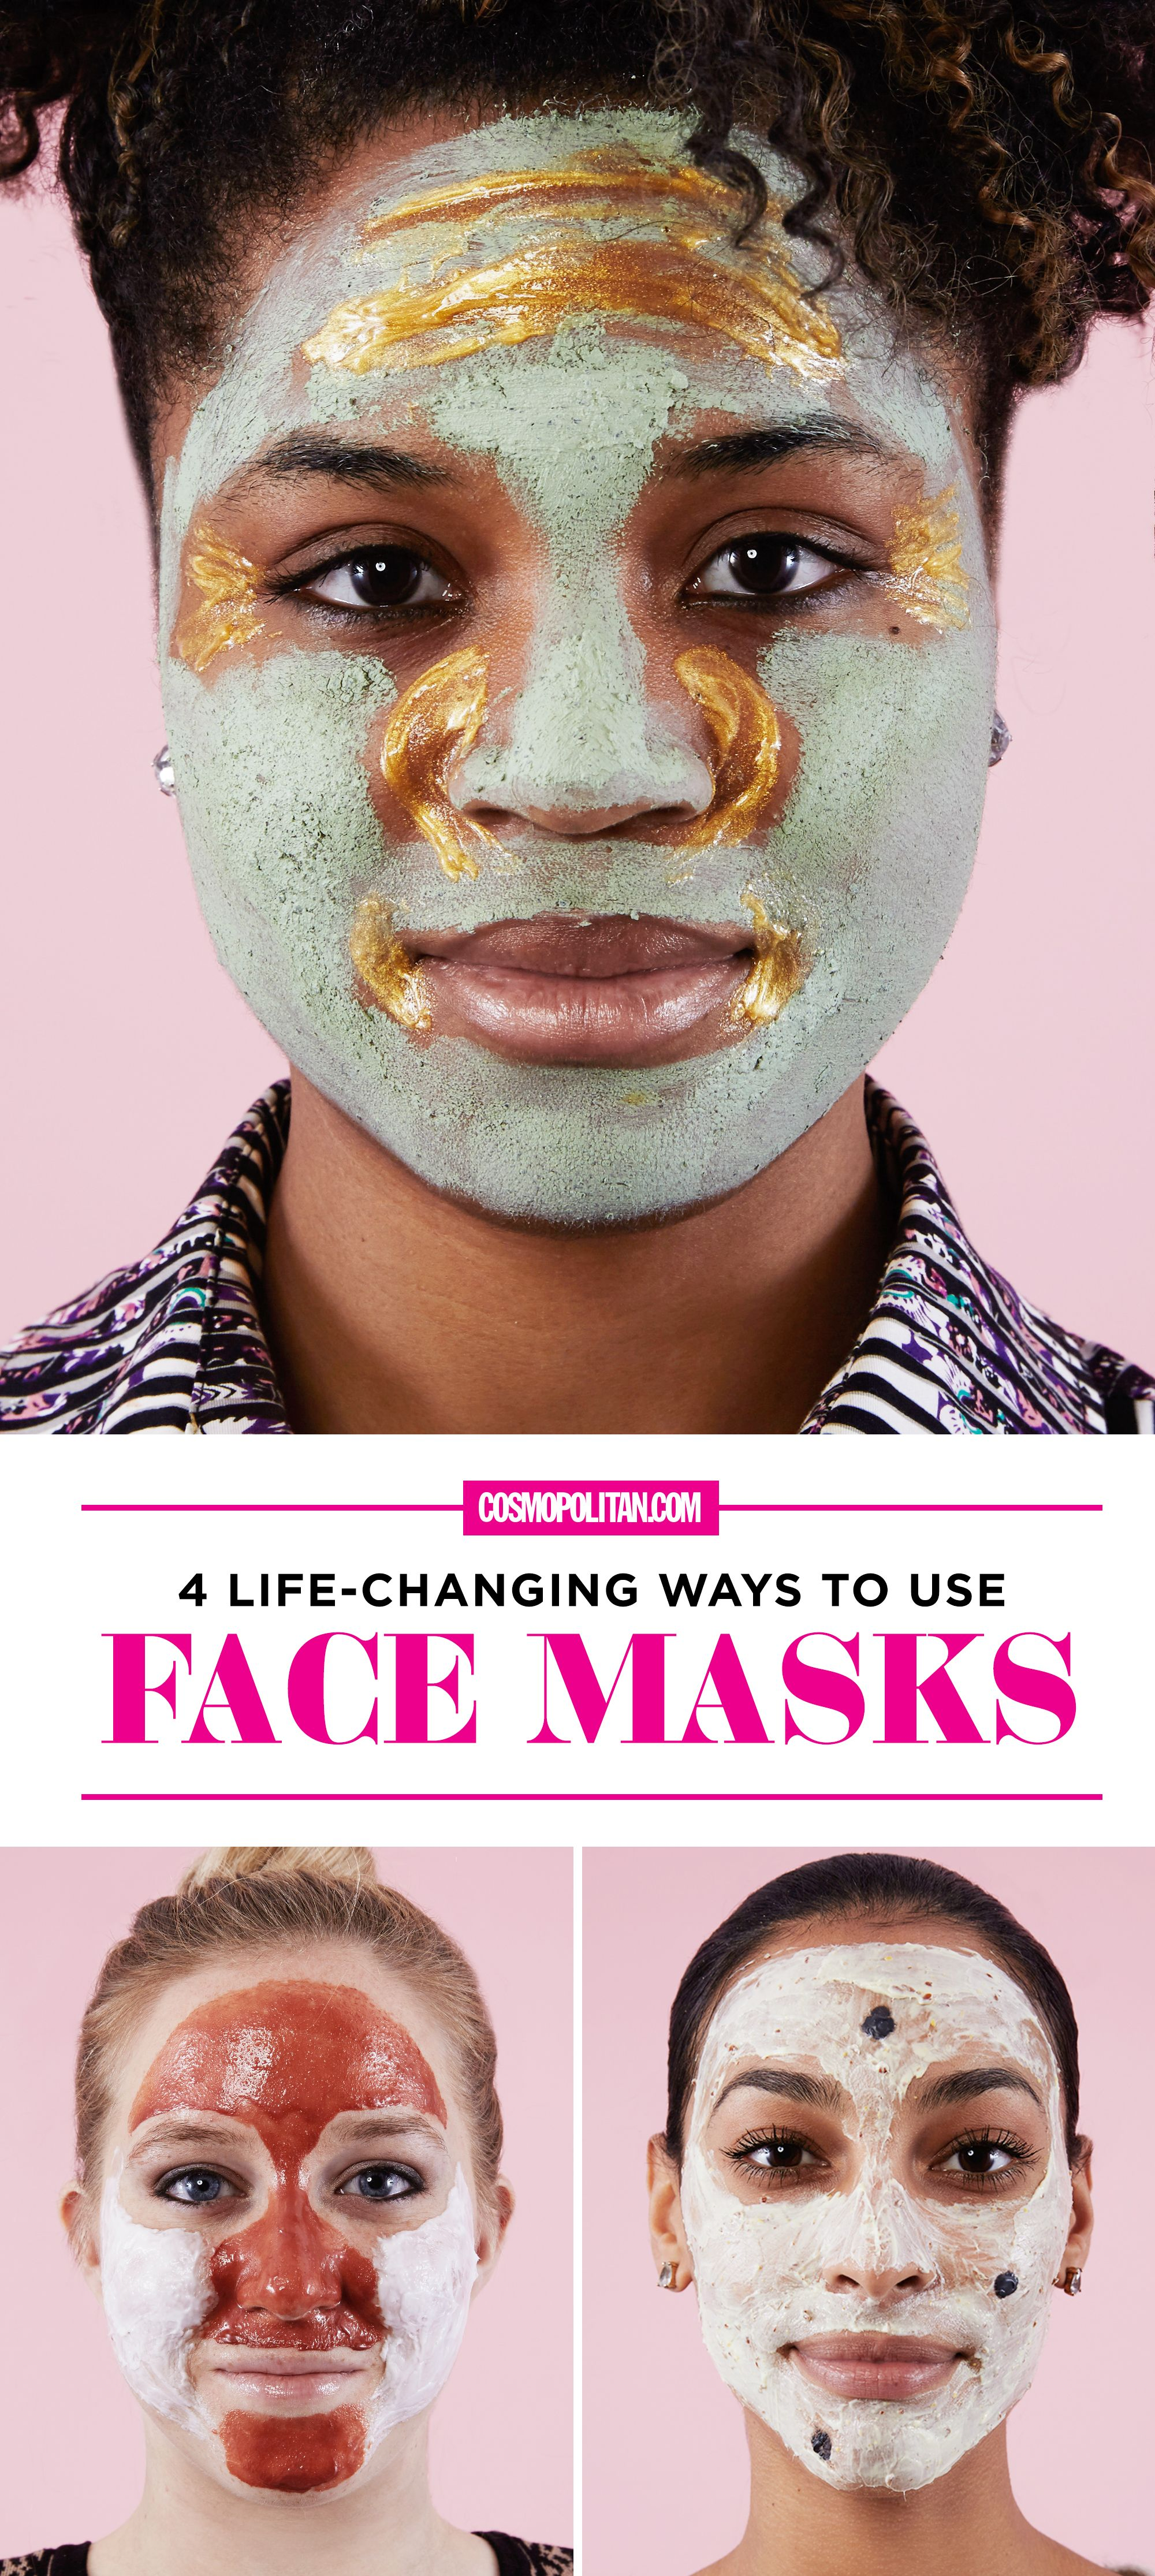 4 Life-Changing Ways to Use Face Masks